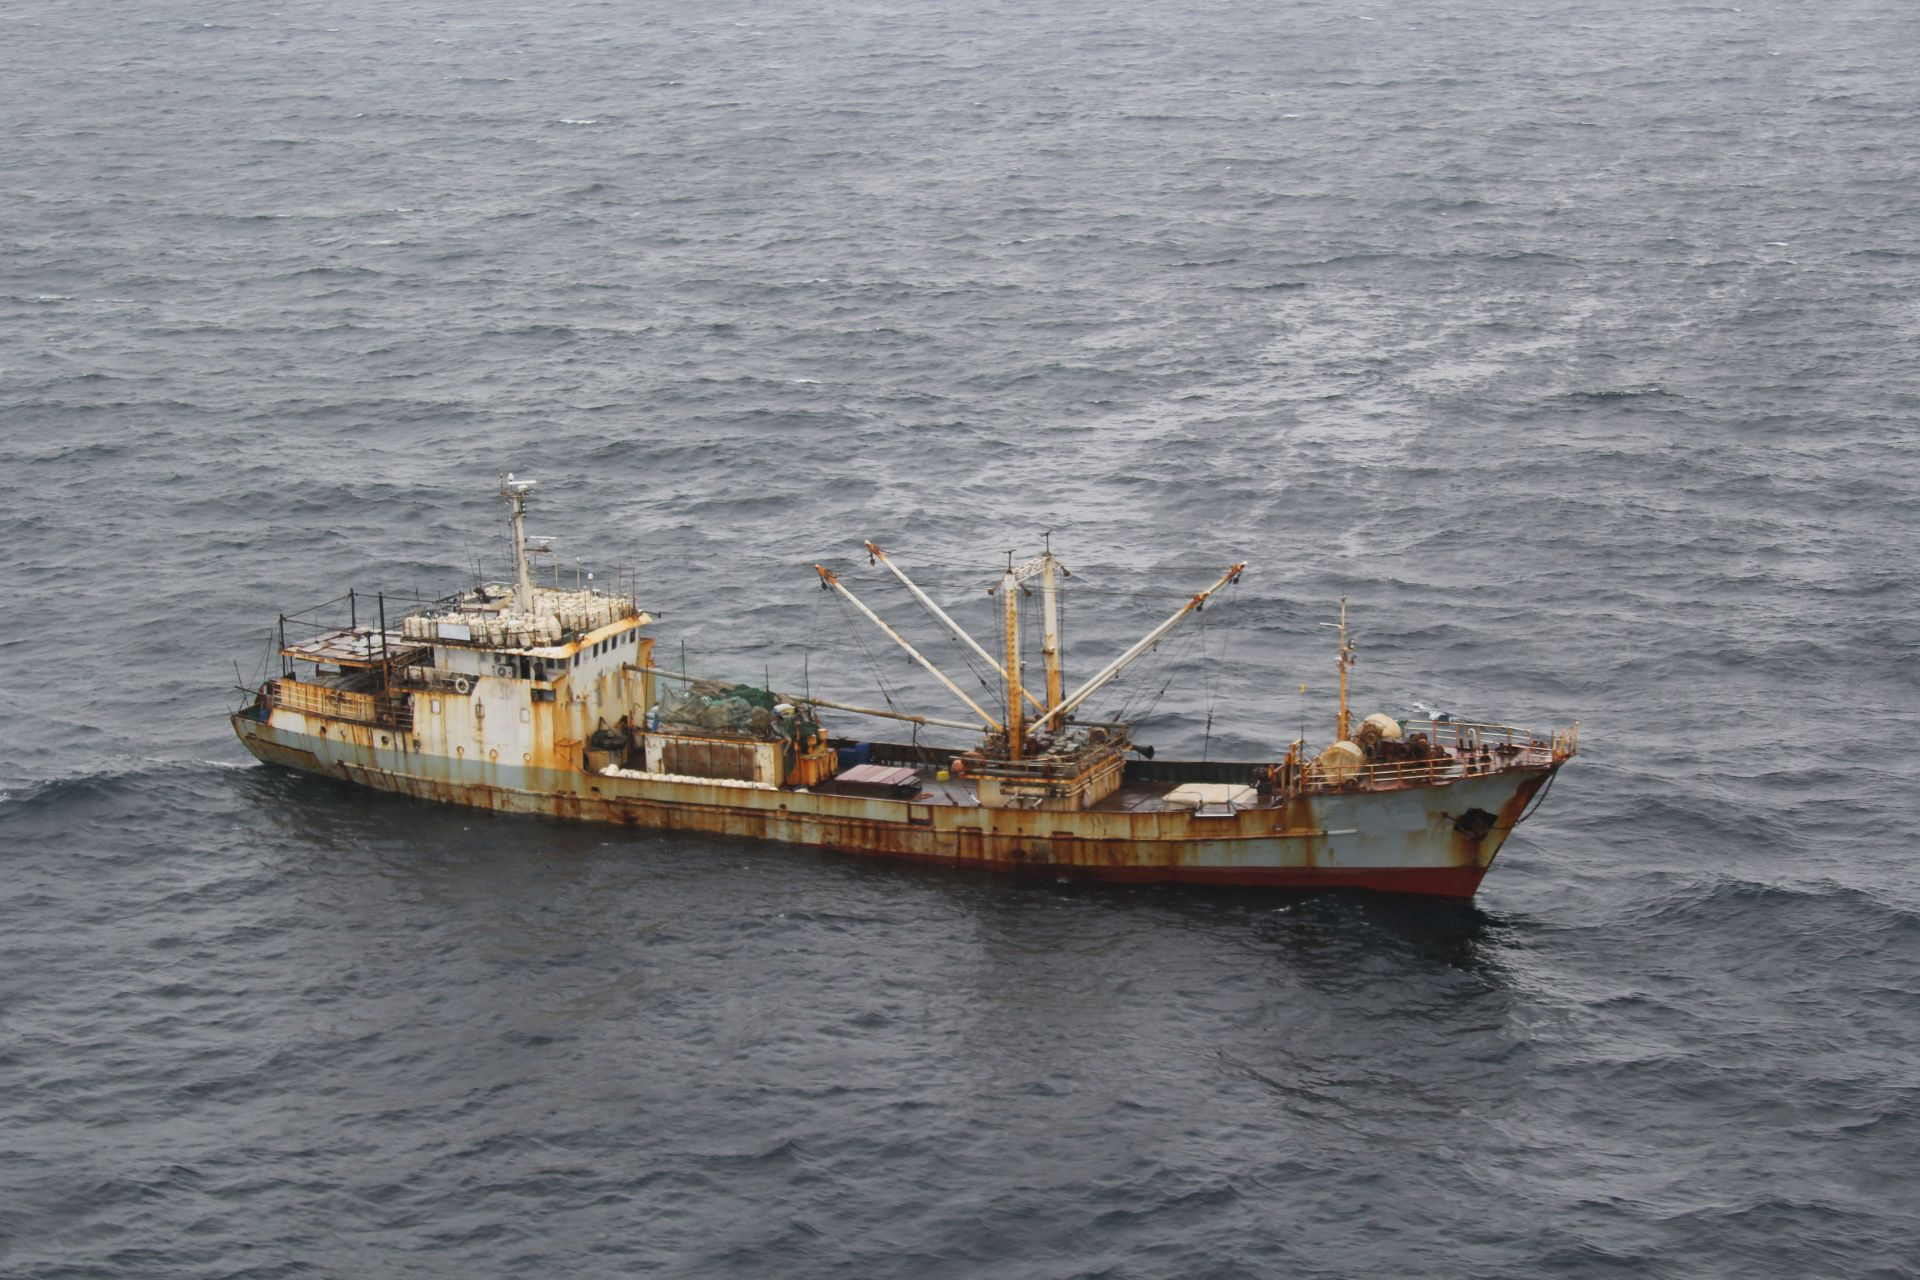 A Chinese fishing vessel suspected of maritime violations.